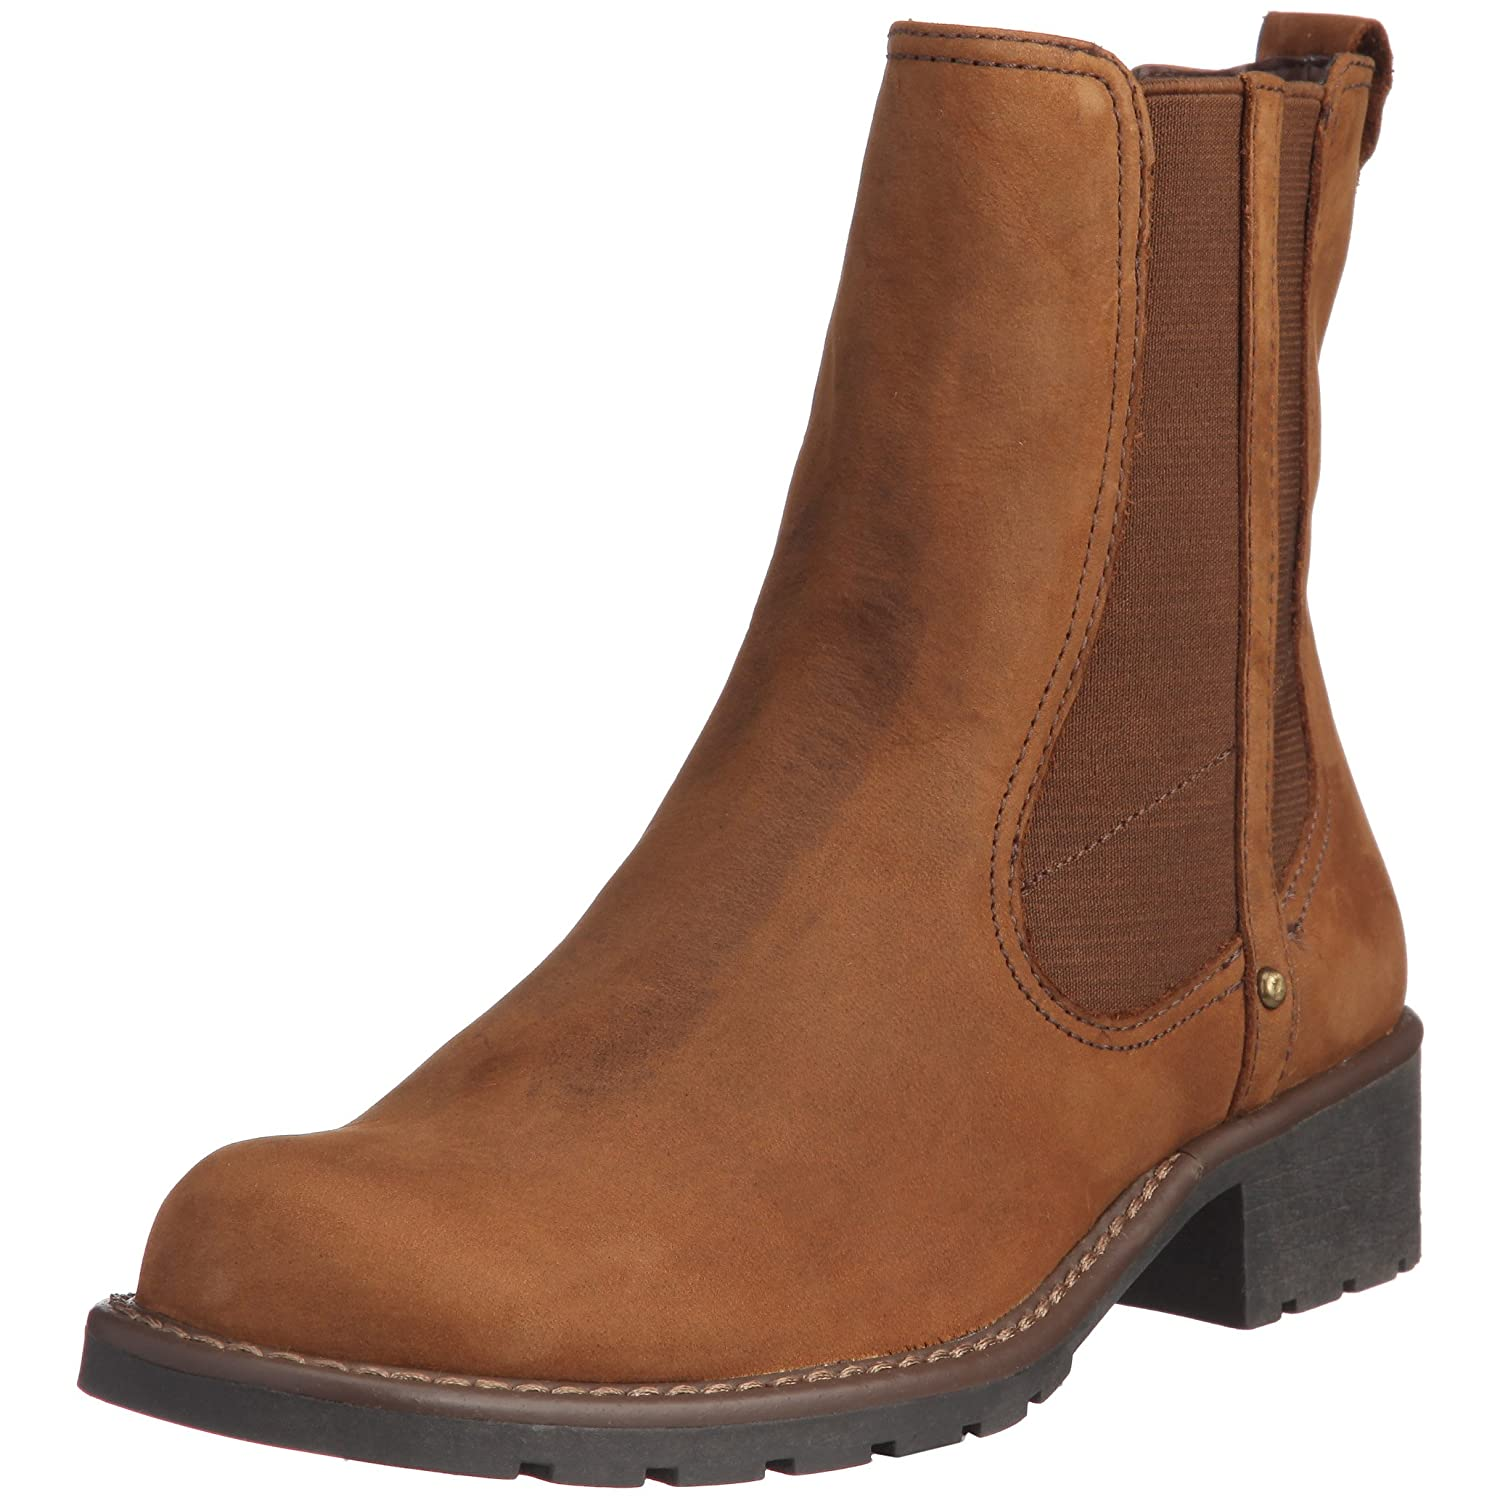 Clarks Orinoco B000LSXRV0 (Brown Club, Bottes Chelsea Femme Orinoco Marron (Brown Snuff) 2dc9992 - piero.space